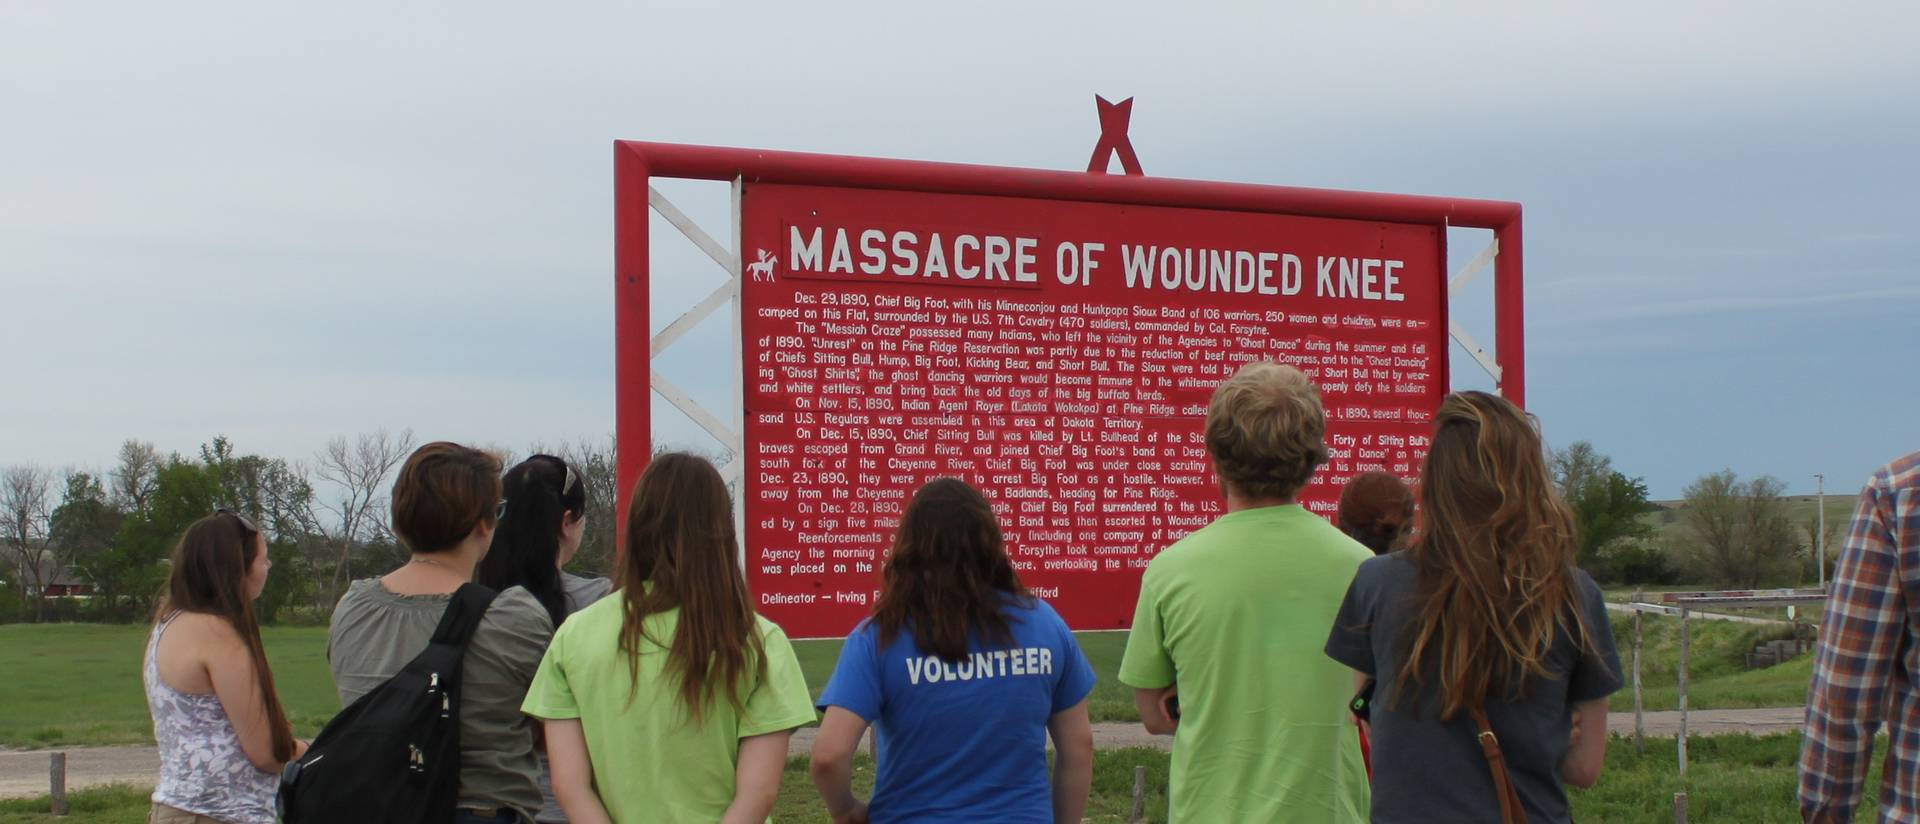 Pine Ridge Reservation immersion trip--Wounded Knee Memorial